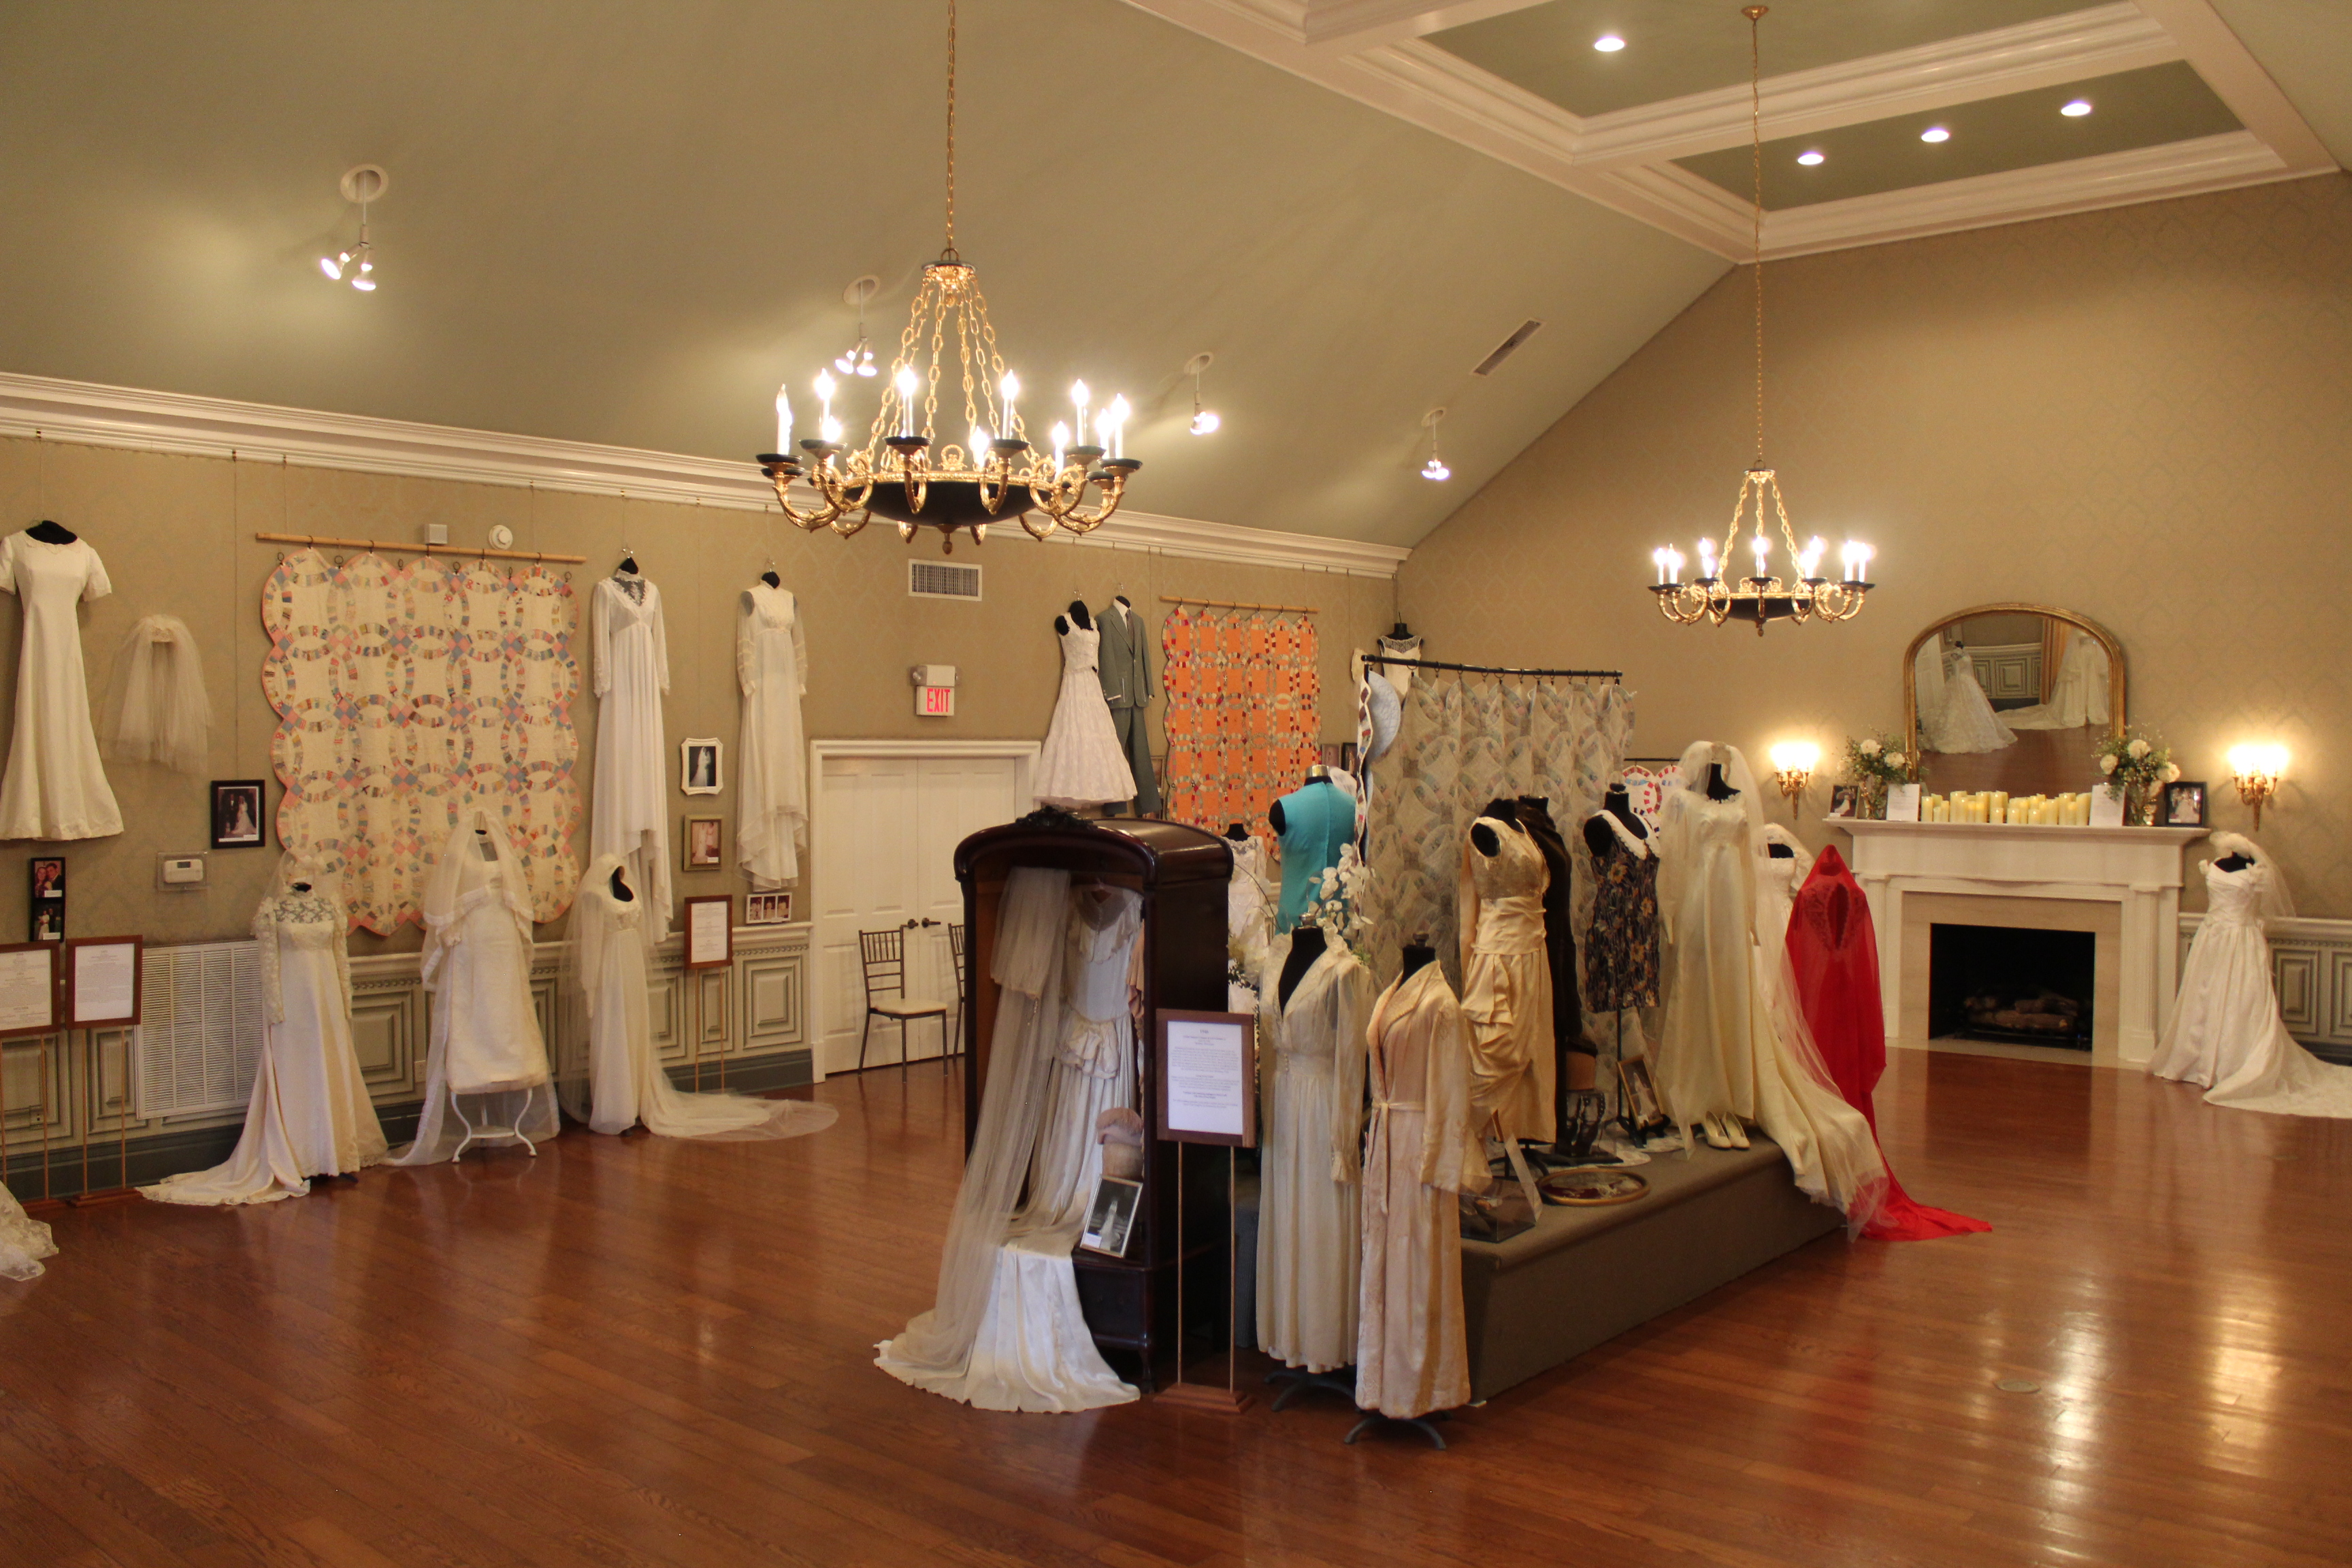 Virtual Tour of 2020 Wedding Dress Exhibit